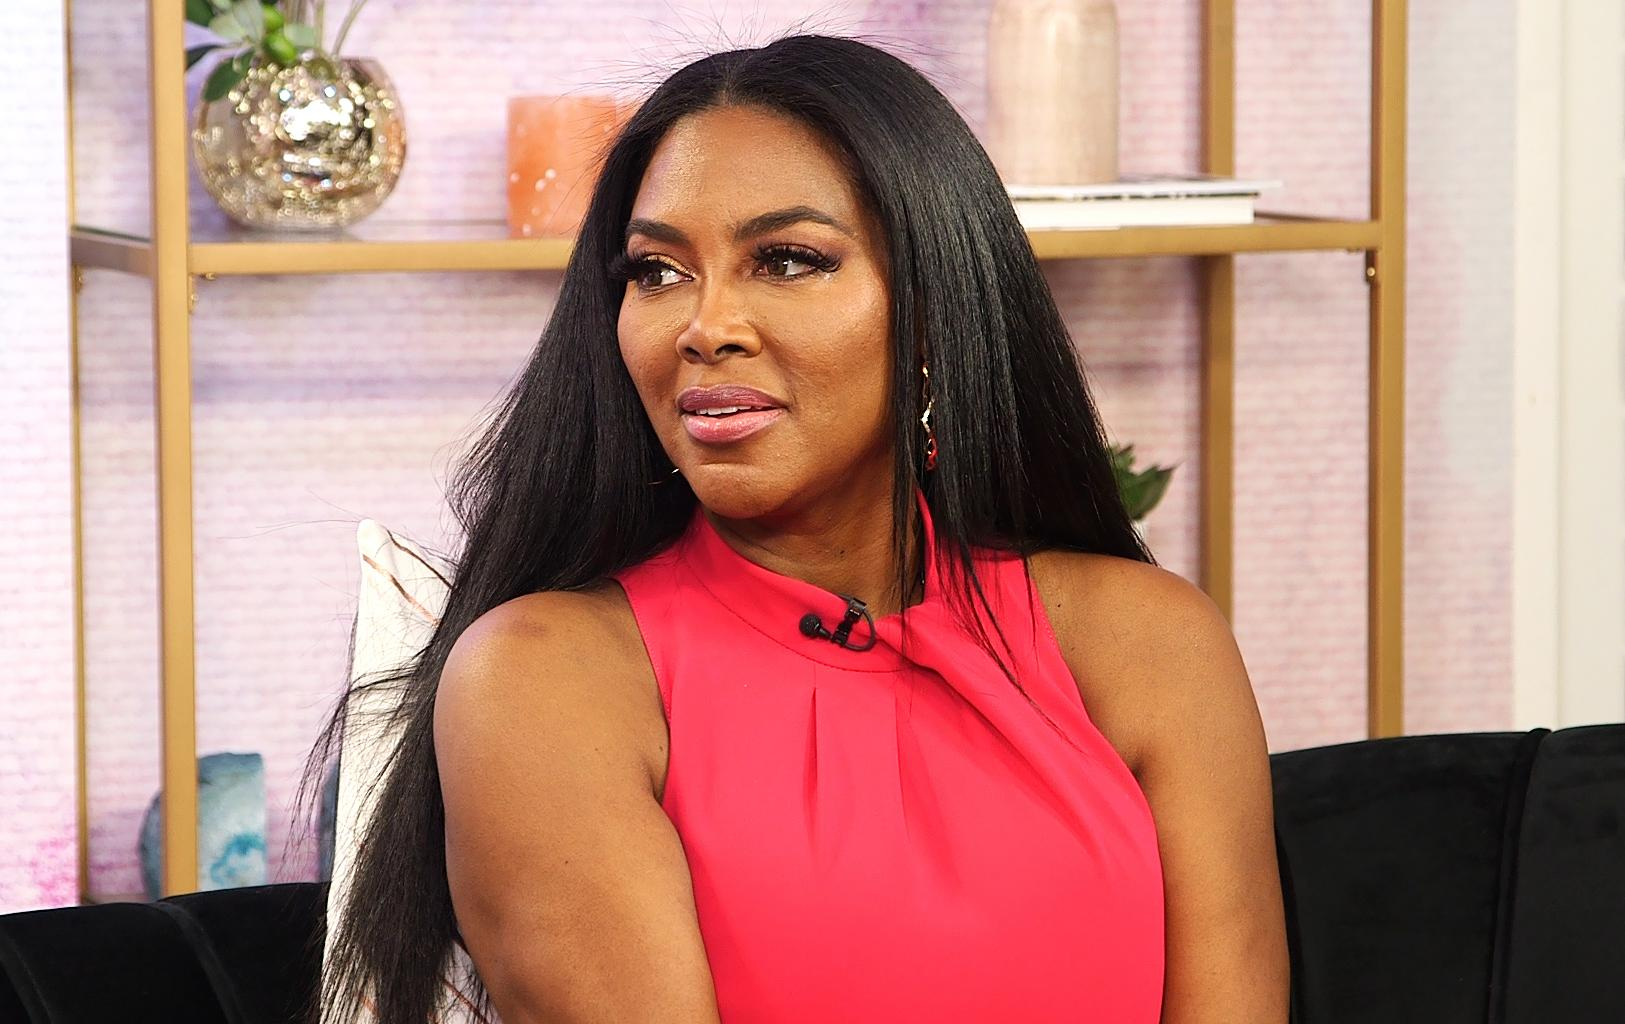 Kenya Moore Takes Baby Brooklyn Daly To Paris For Her First Birthday - See The Video